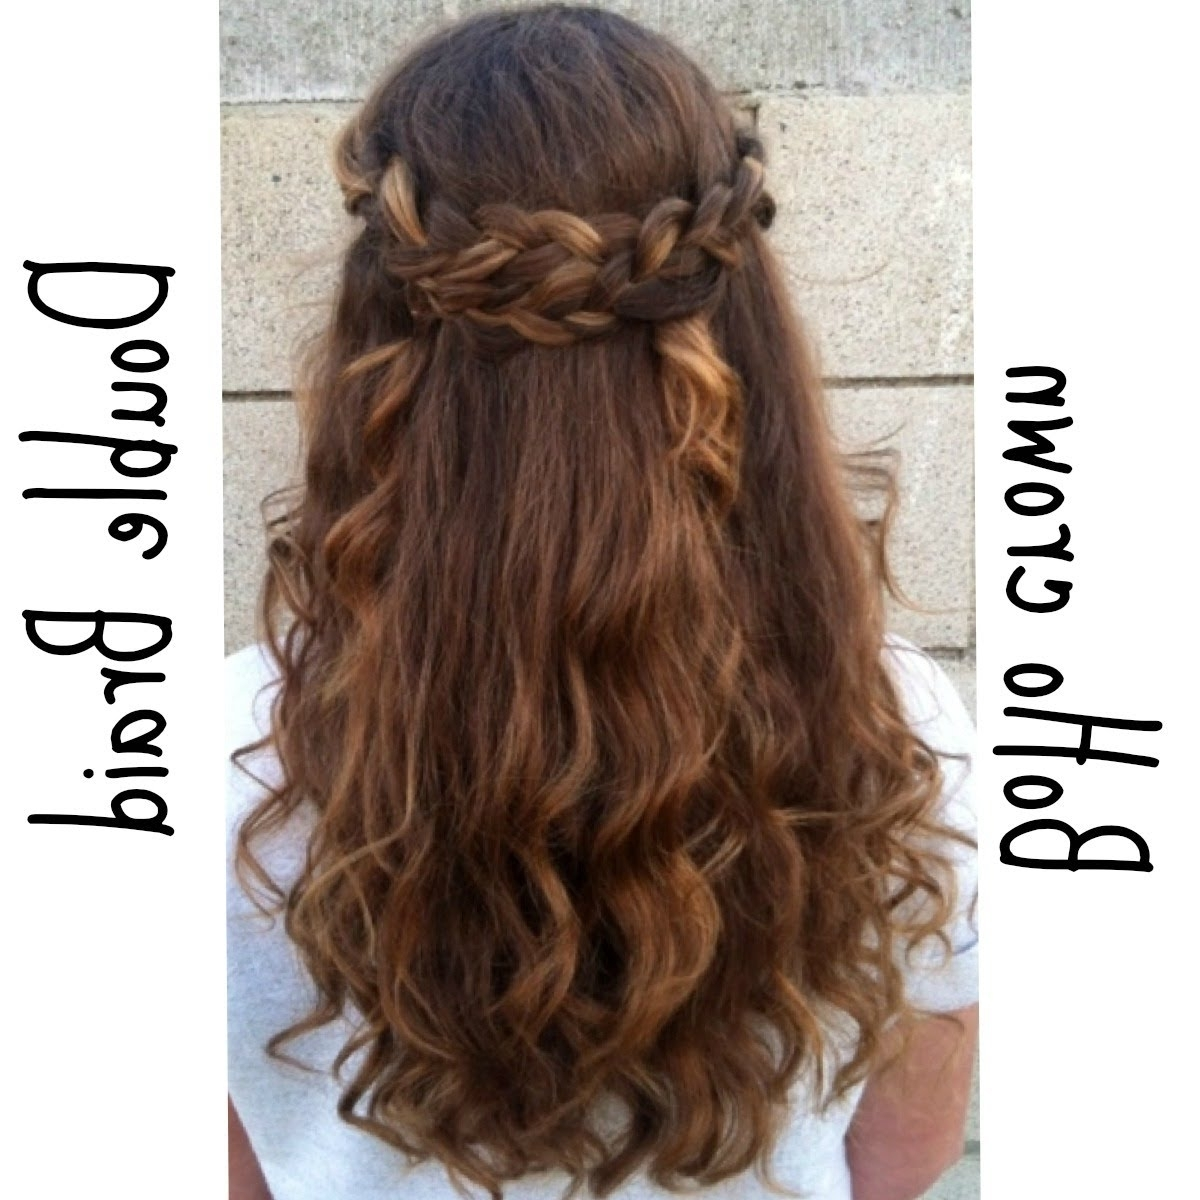 Braided Half Up Half Down Hairstyle | Hair & Make Up | Pinterest Inside Updo Half Up Half Down Hairstyles (View 5 of 15)